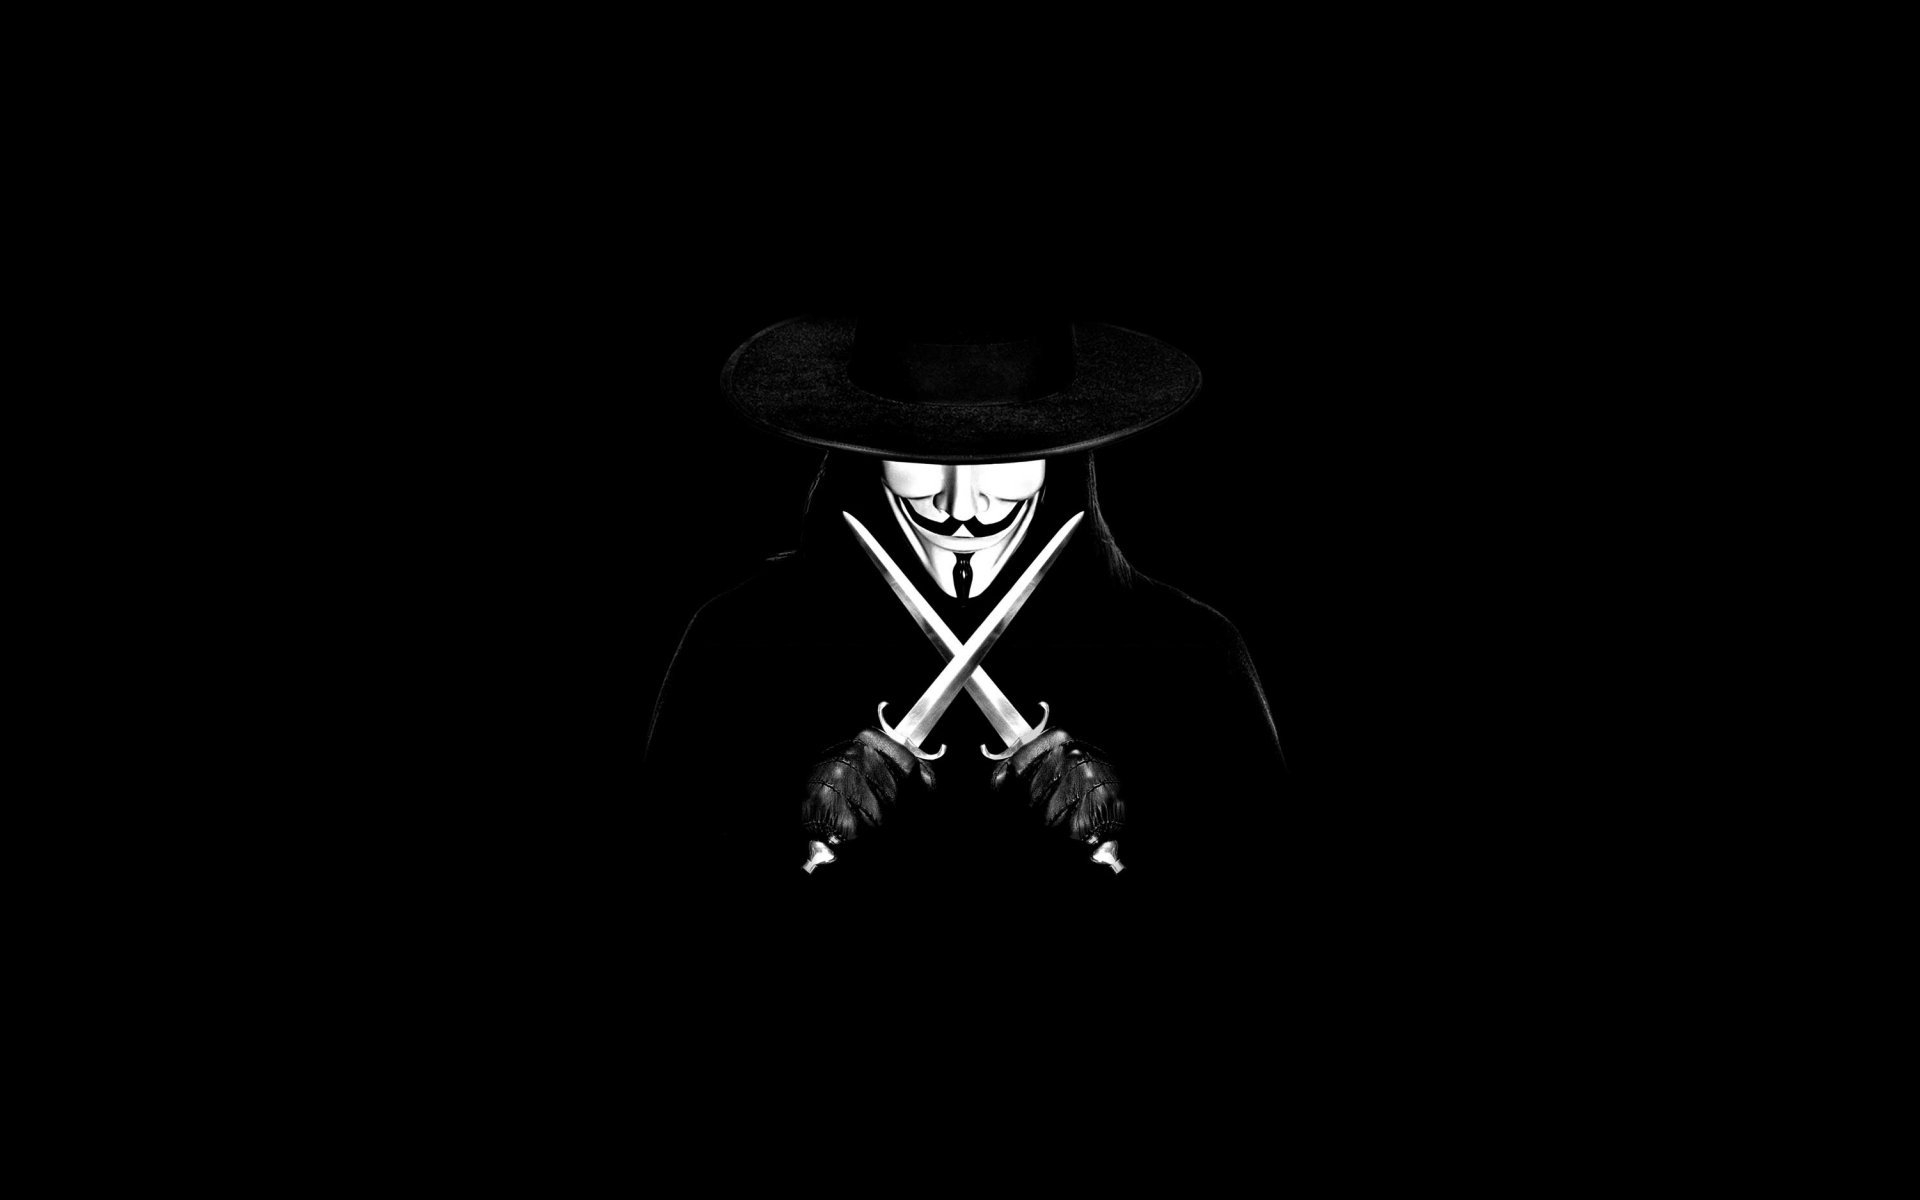 v for vendetta full hd wallpaper and background image | 1920x1200